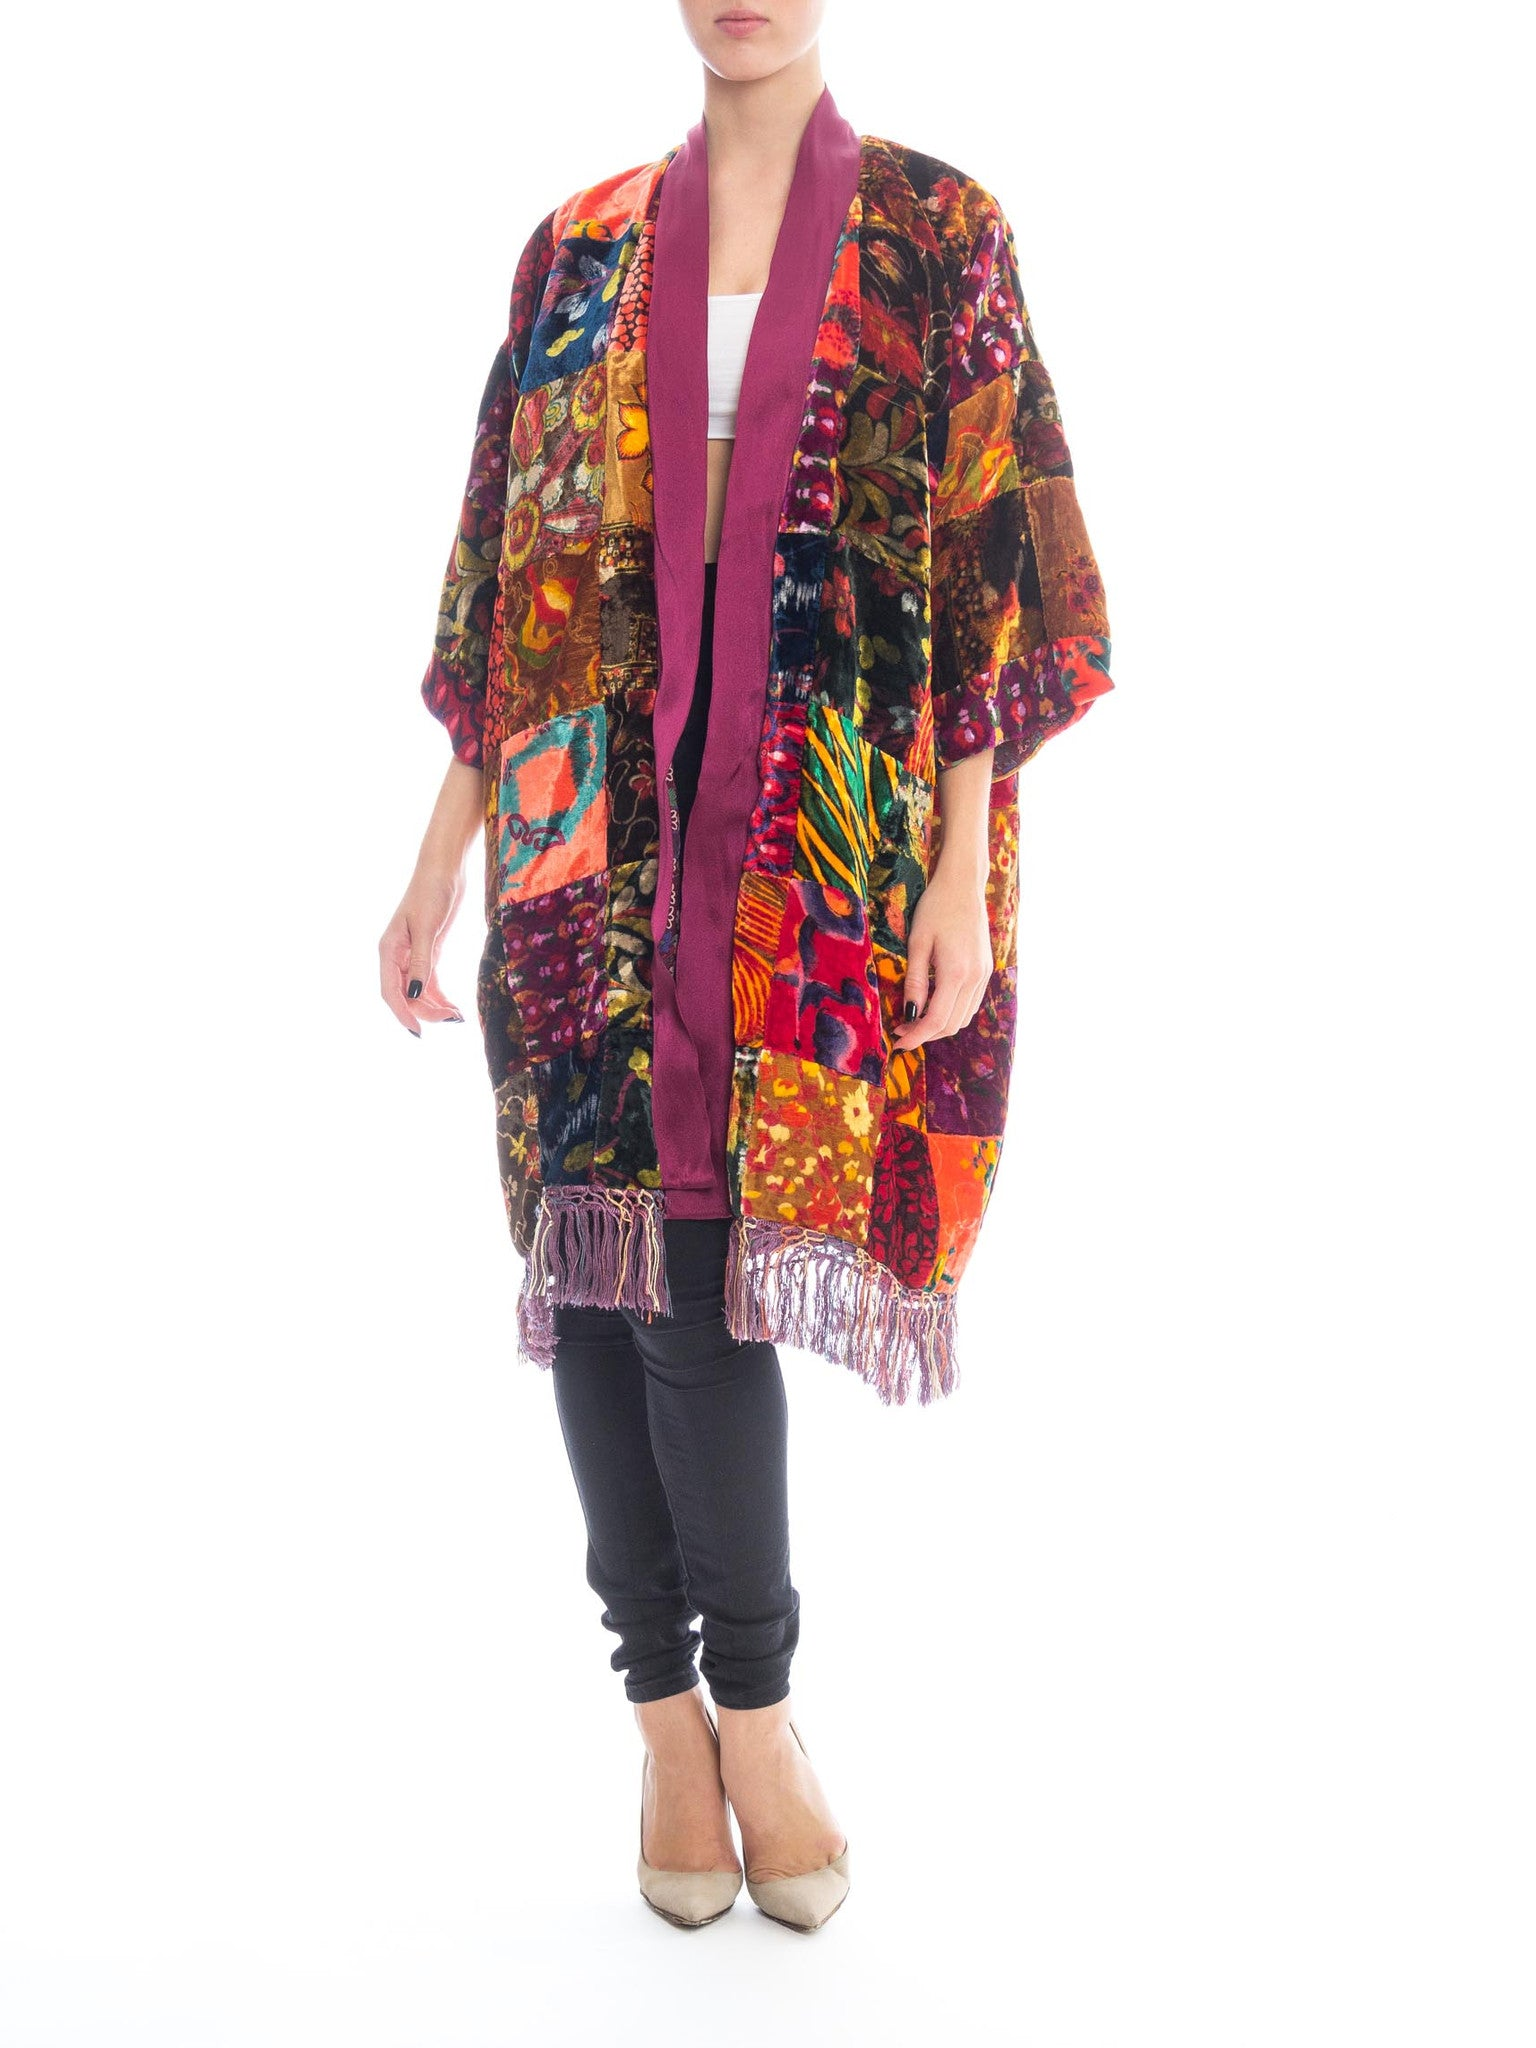 Morphew Collection Jeweltone Rayon & Silk Velvet Vintage 70S Patchwork Kimono Lined In 40S With 20S Fringe